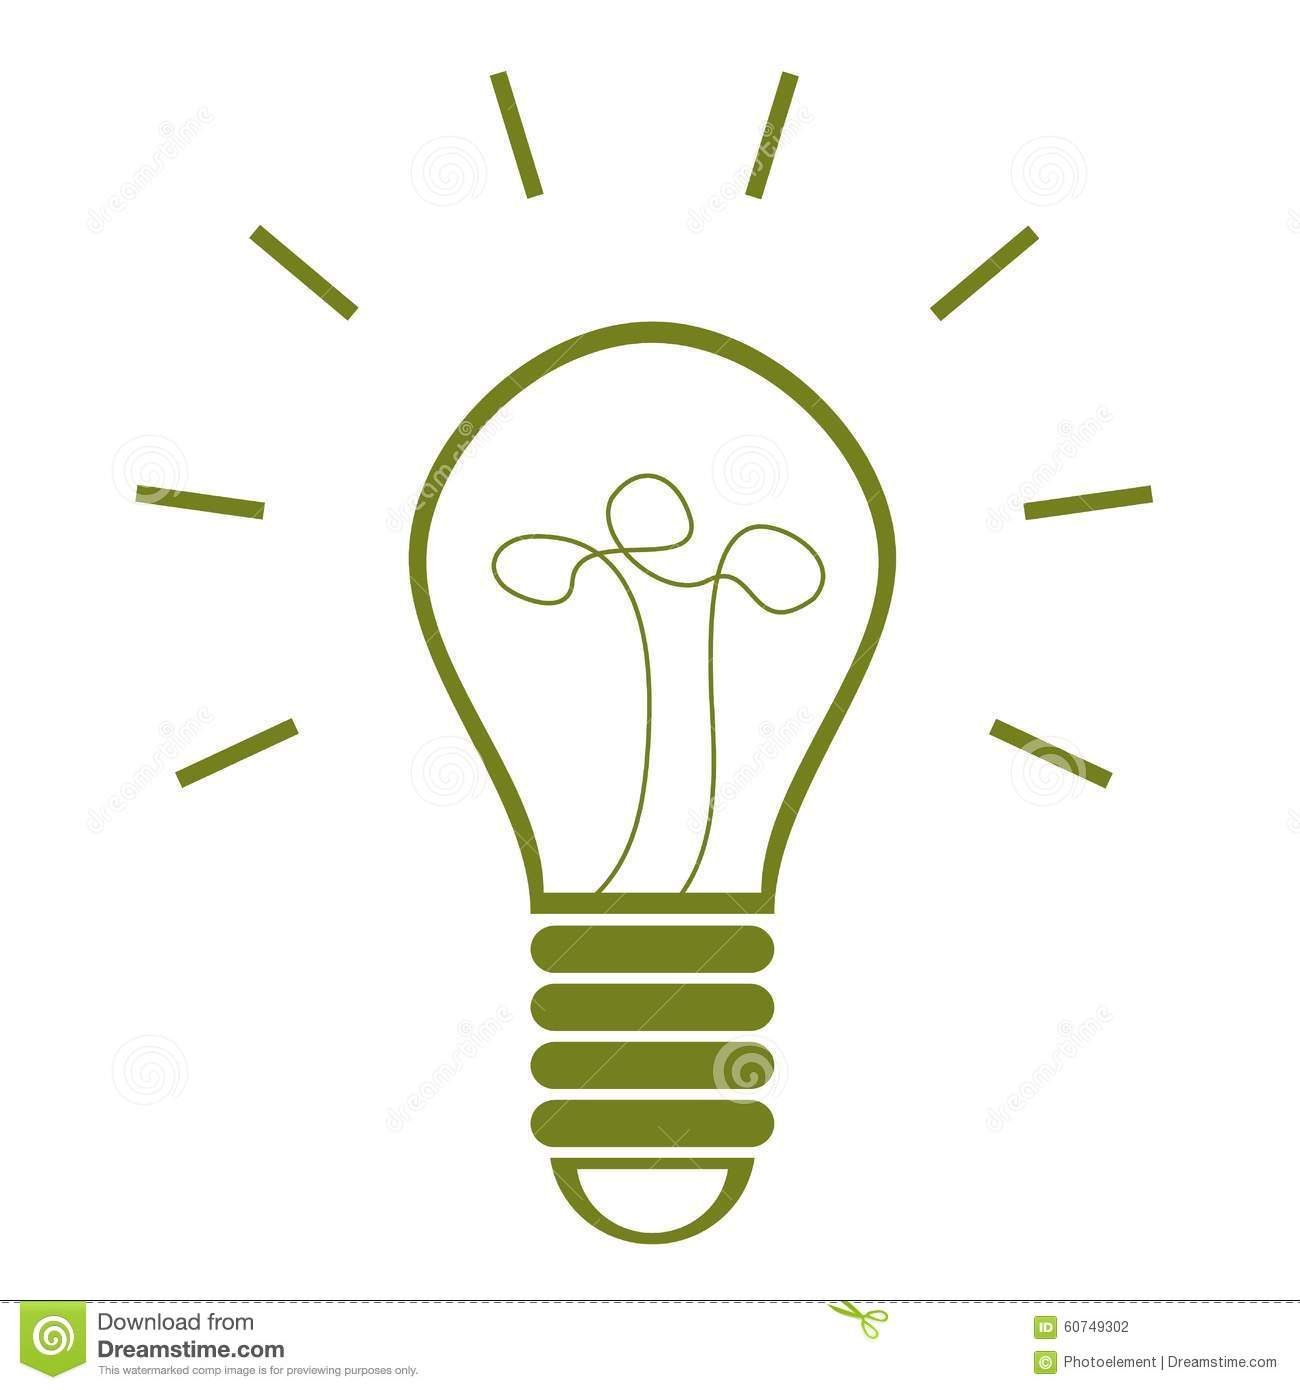 Green electricity bulb clipart.